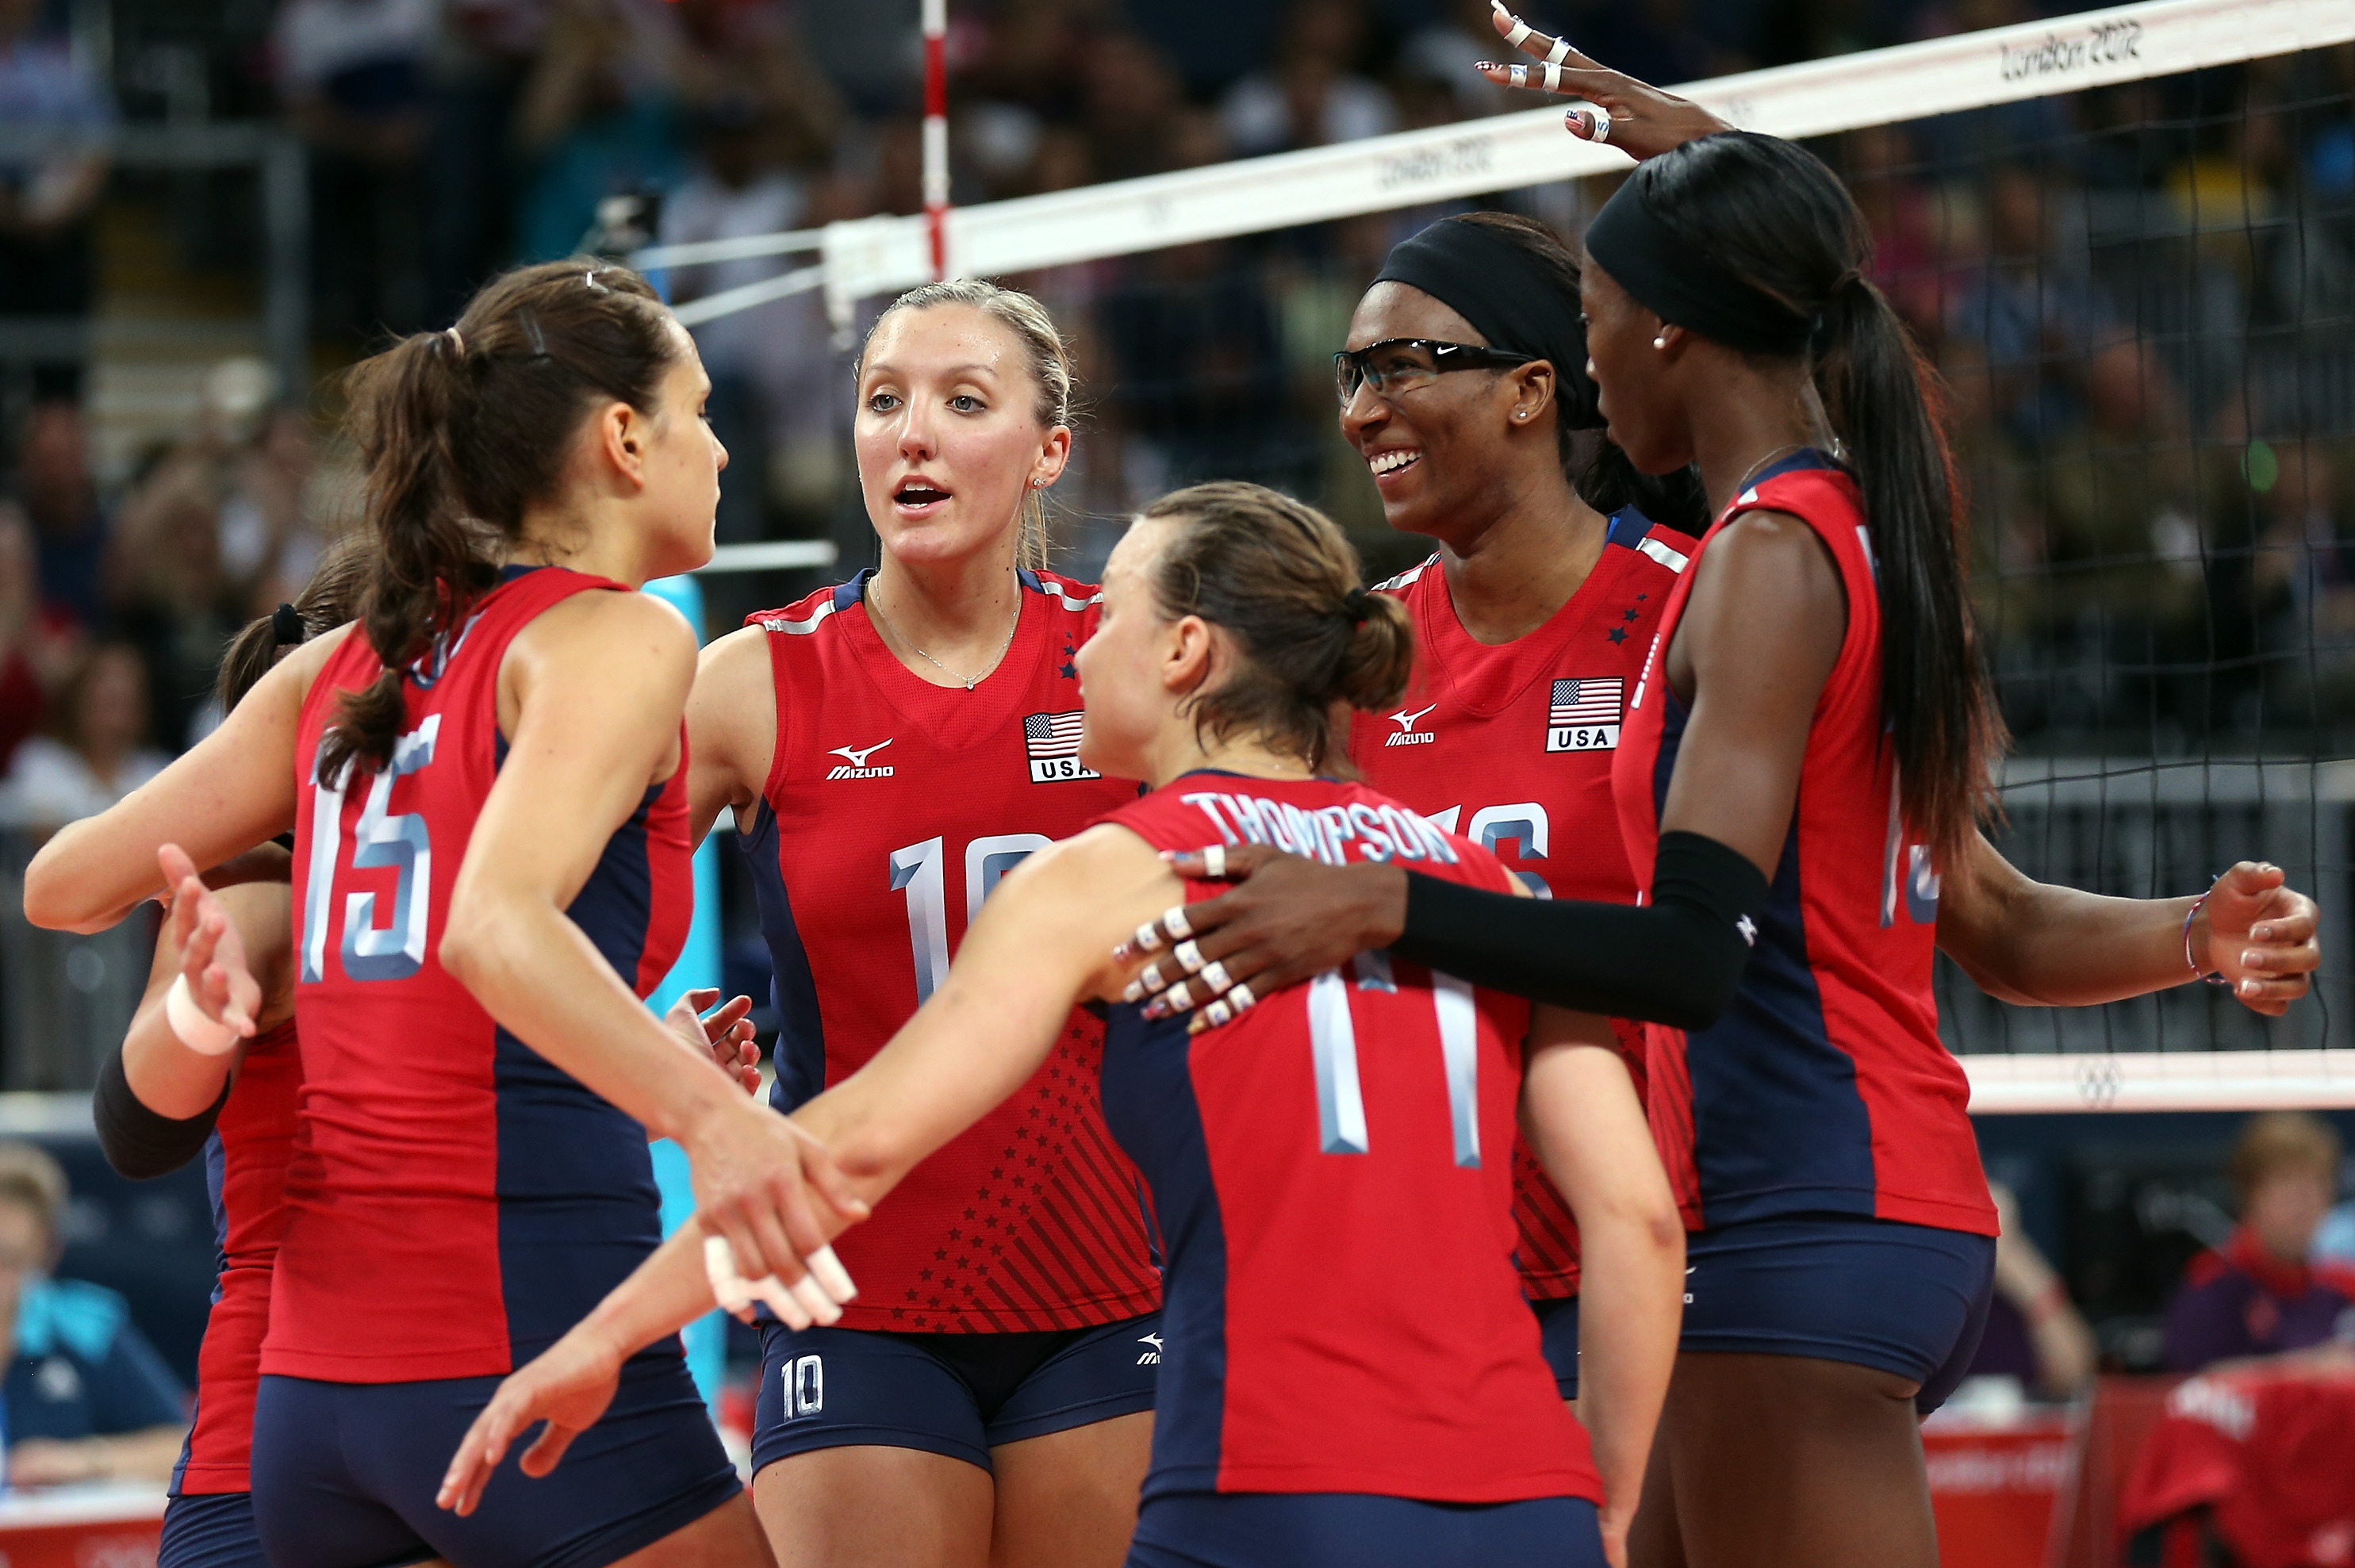 Us Olympic Women S Indoor Volleyball Team 2012 The 5 Mvps In Pursuit Of Gold Bleacher Report Latest News Videos And Highlights